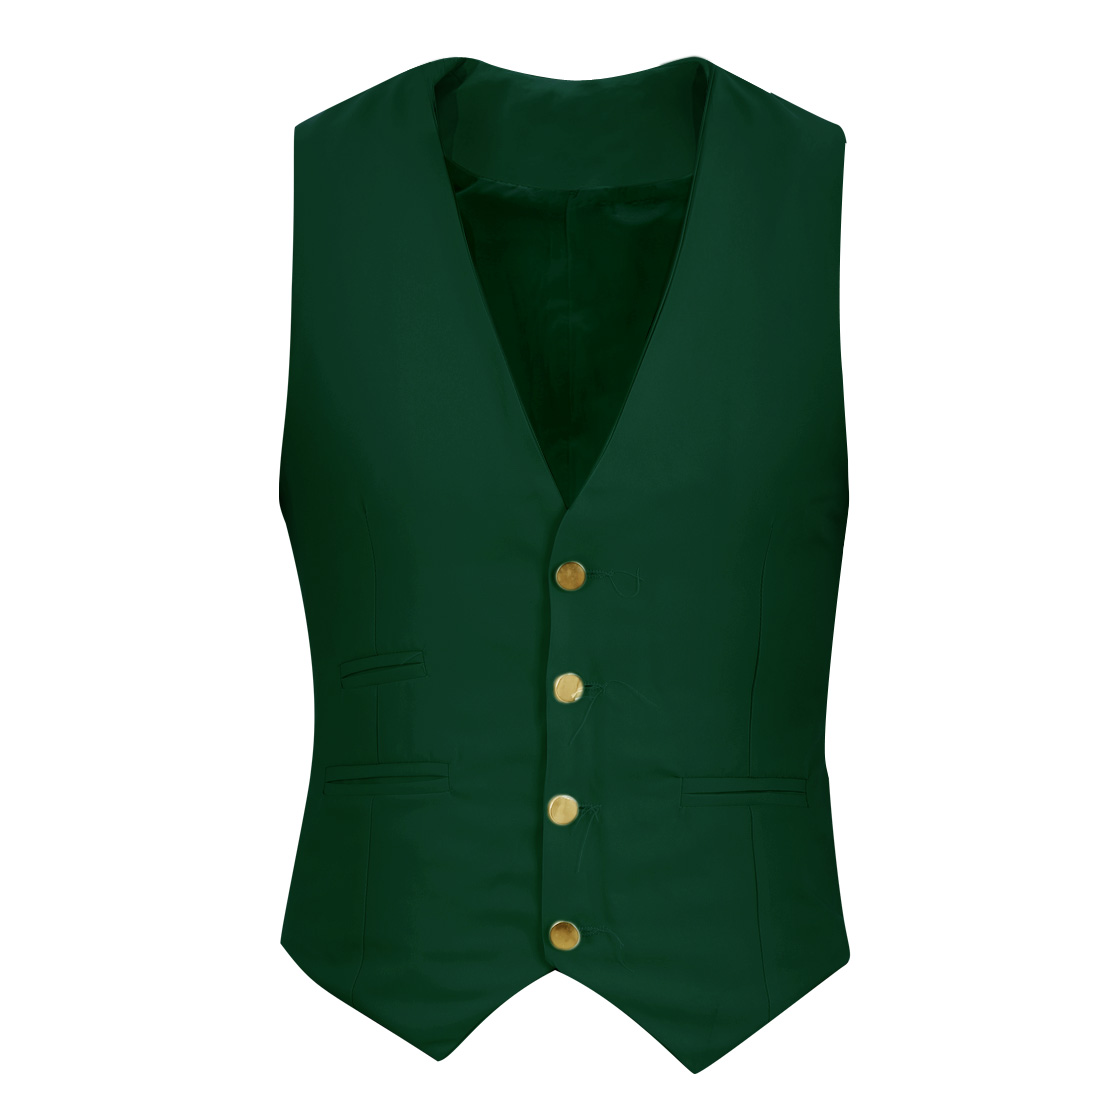 Man Chic Buckle Strap Back Detail Dark Green Spring Casual Vest Coat S